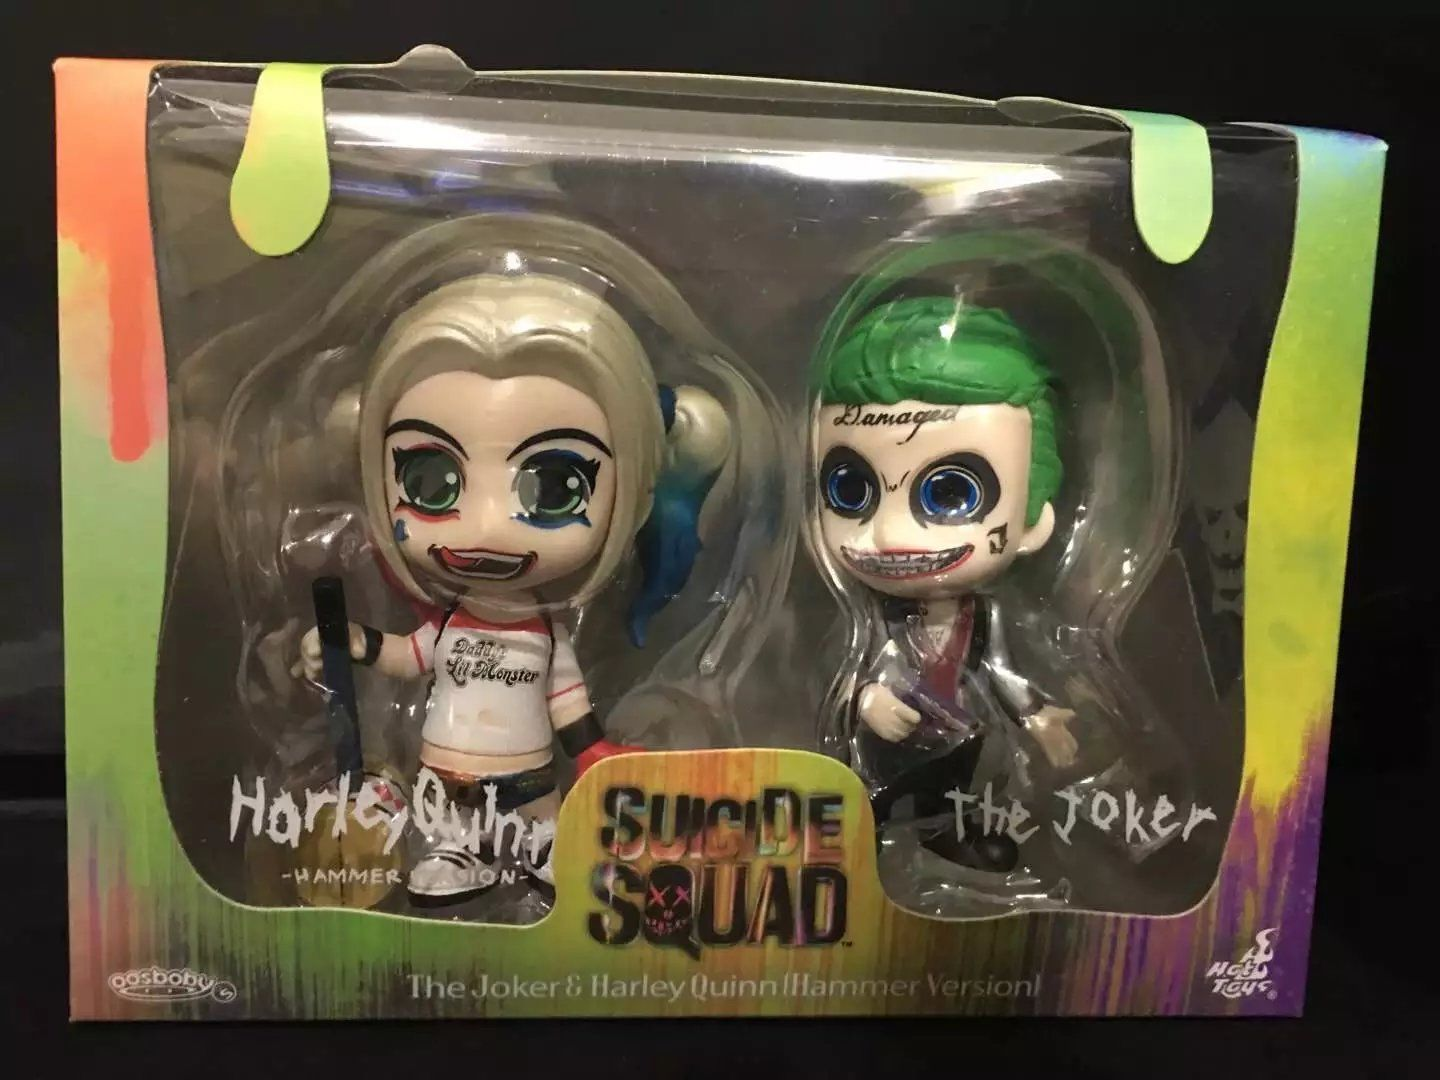 2X Suicide Squad Figure The Joker and Harley Quinn Hammer Toy by YX001